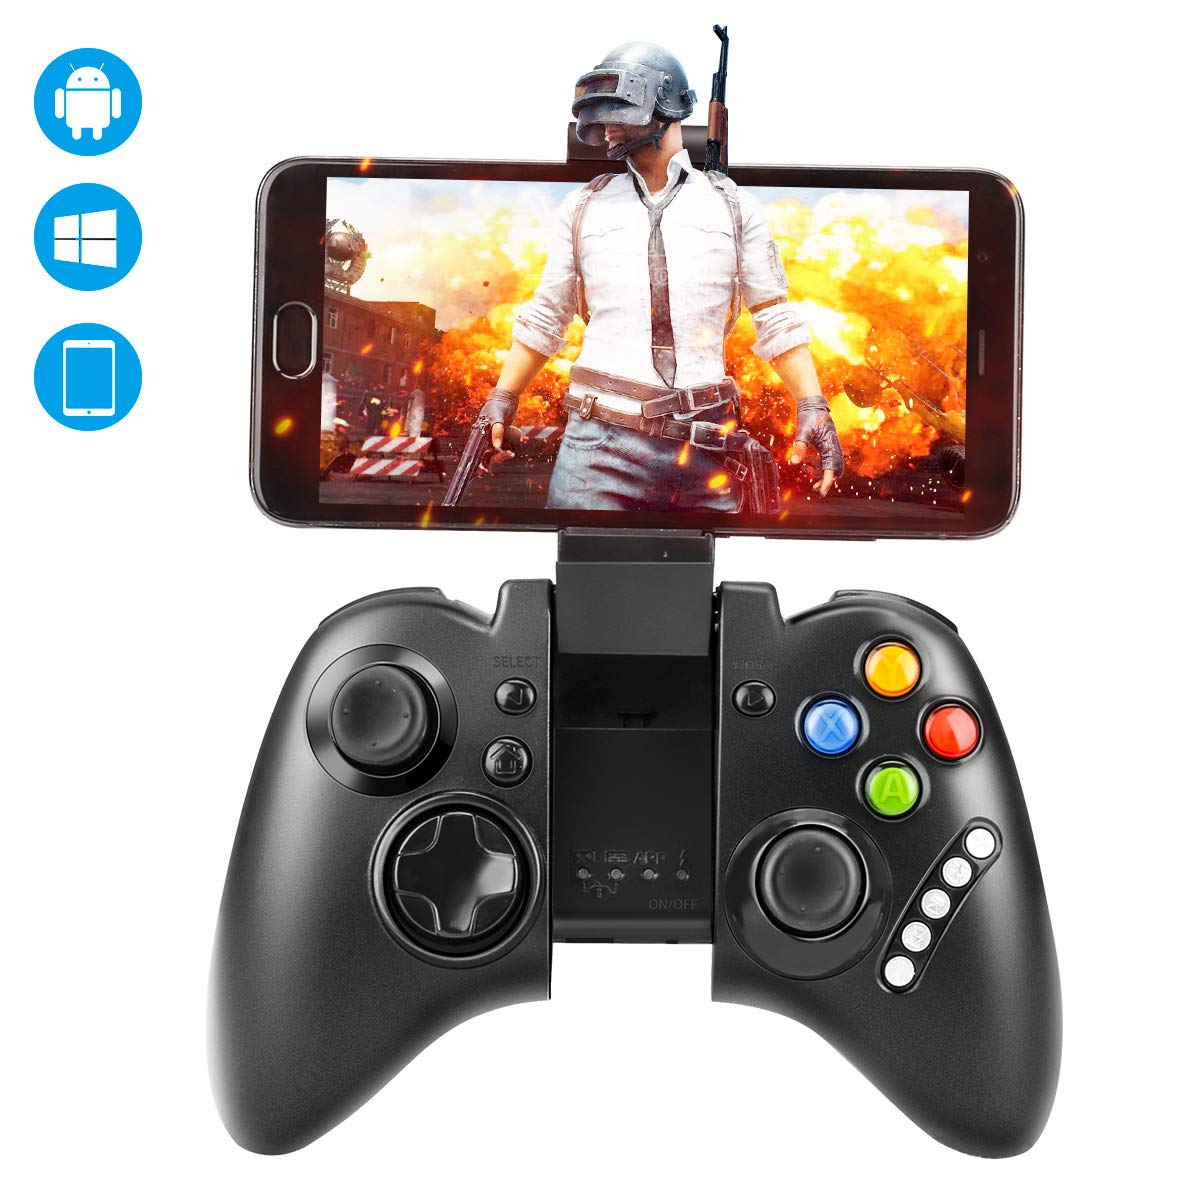 Wireless Mobile Game Controller, Jhua Mobile Gaming Gamepad Joystick Rechargeable Stretchable Smartphone Game Clips Supports Android 3.2 Above Smartphone, Windows PC